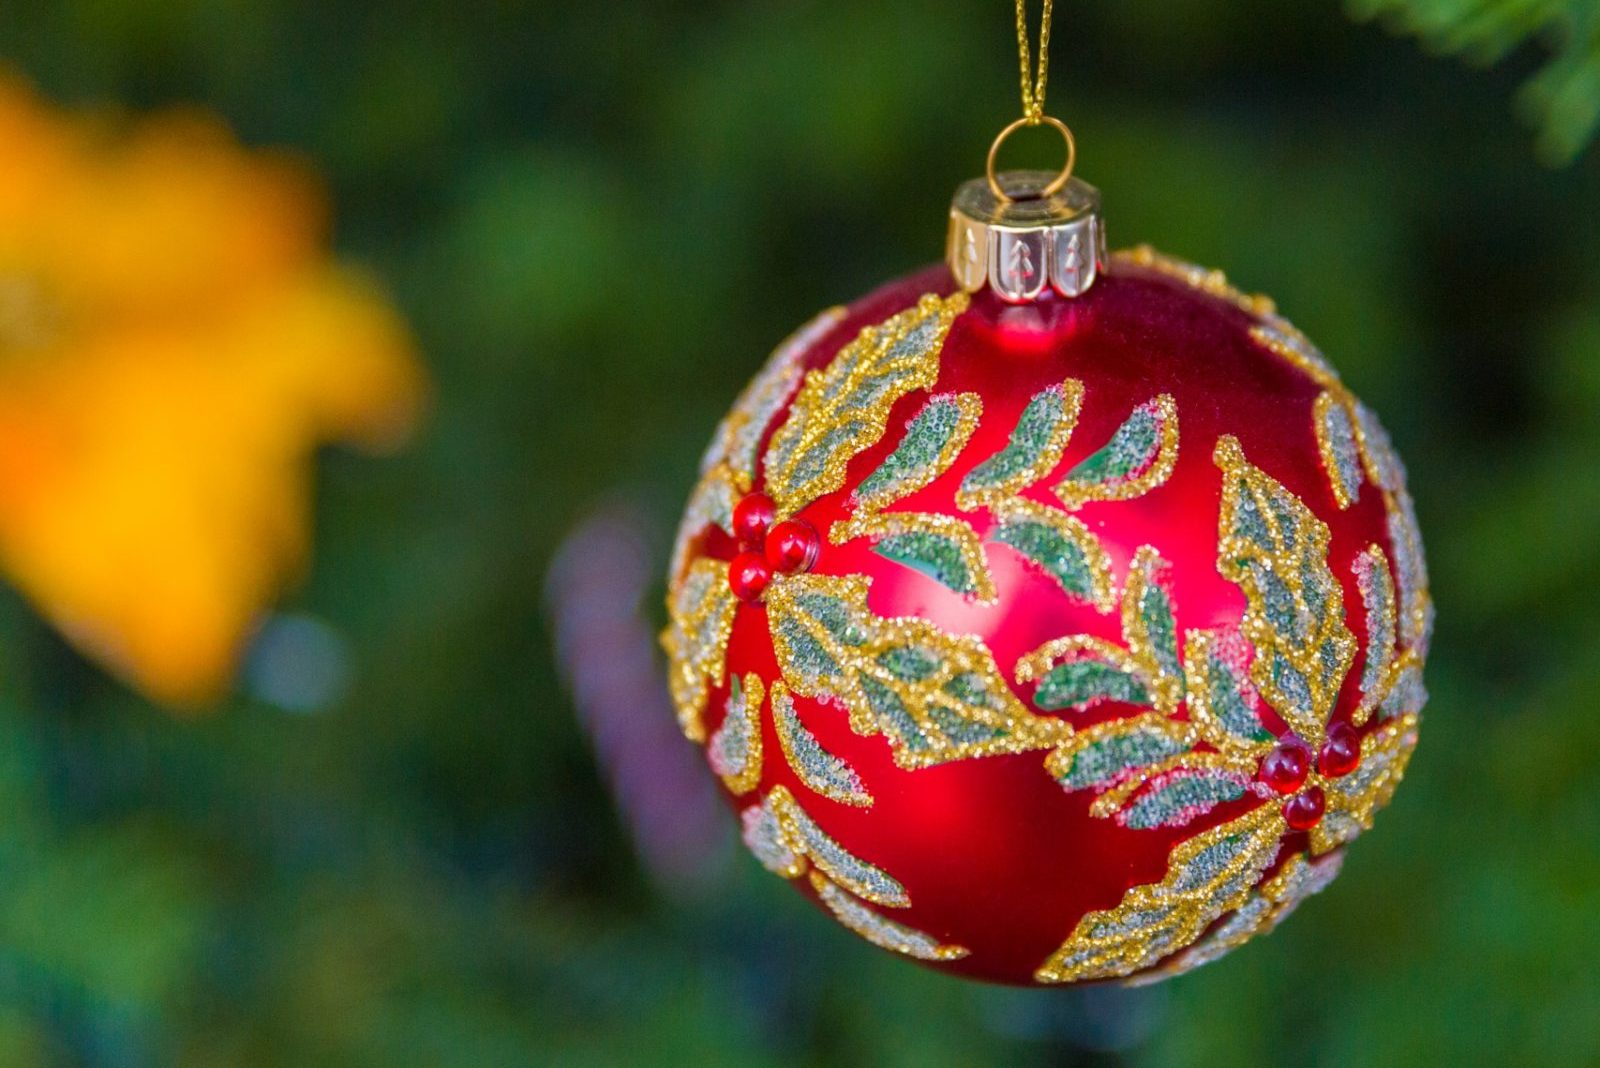 The Health and Safety of Christmas Decorations - HR24